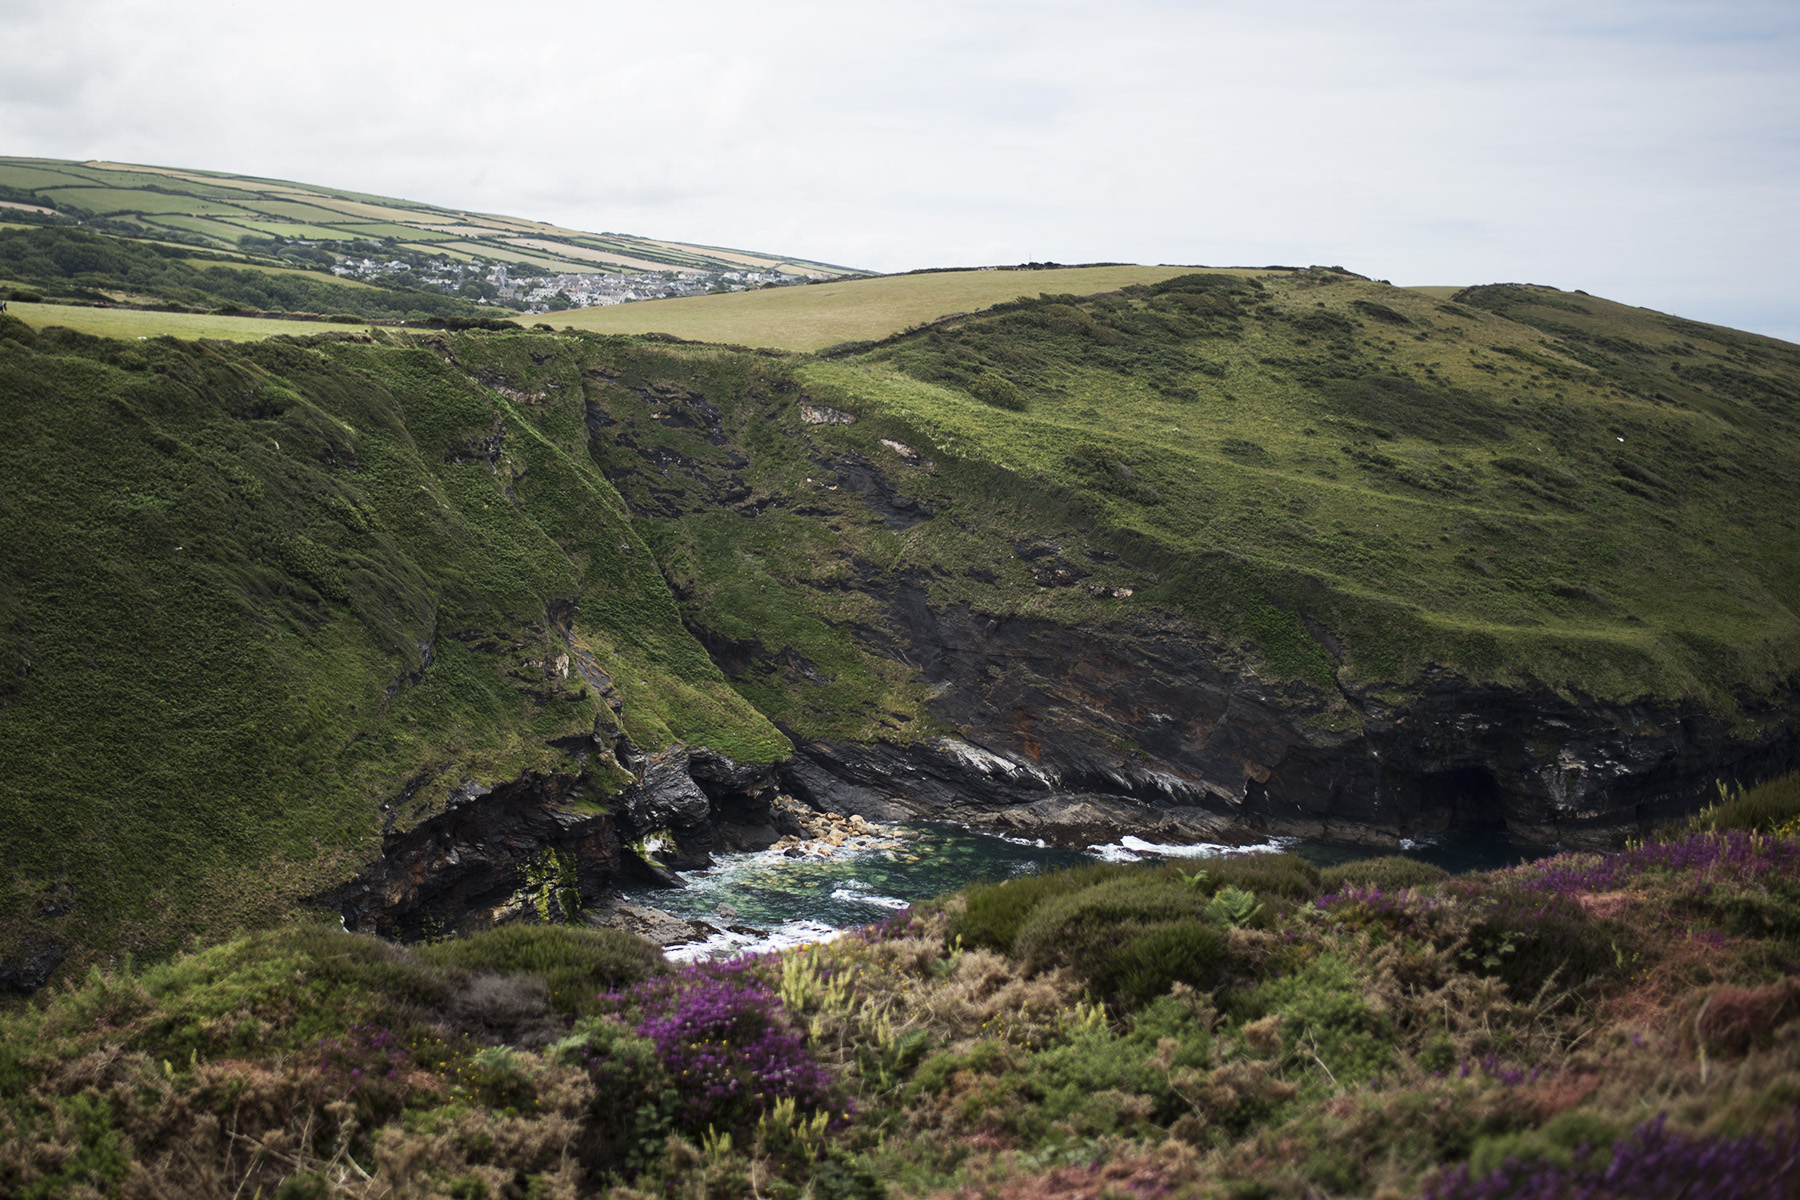 Beeny Cliff near Boscastle | The Cornish Dog